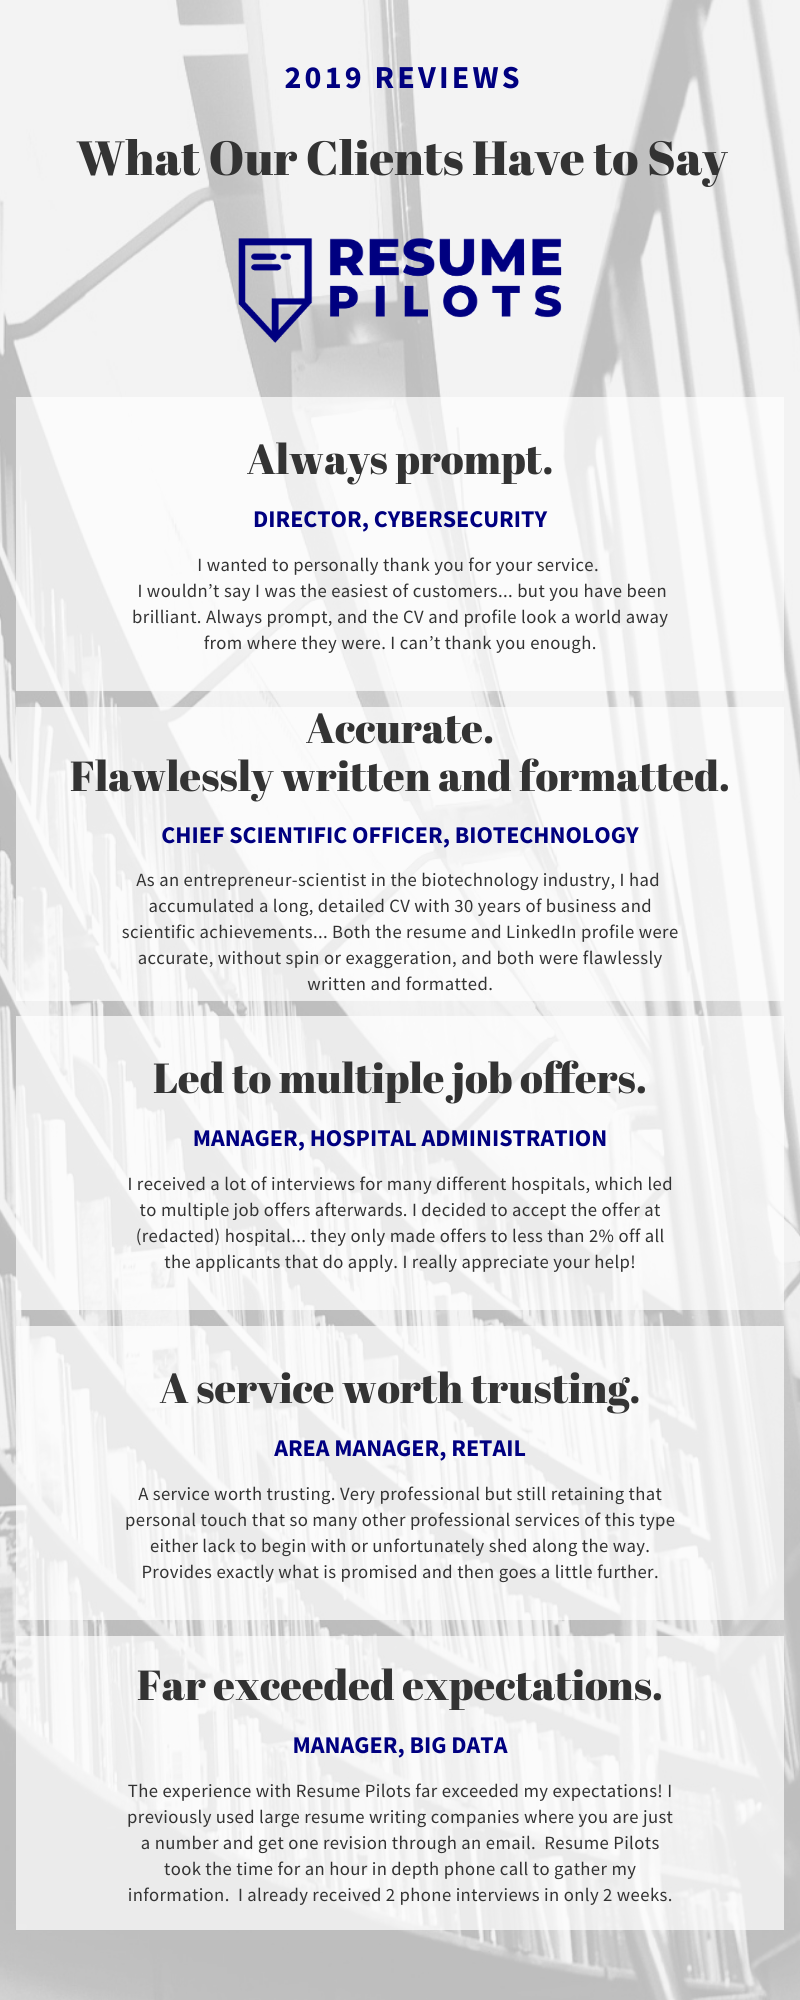 Executive Resume Writing Services Reviews 2019